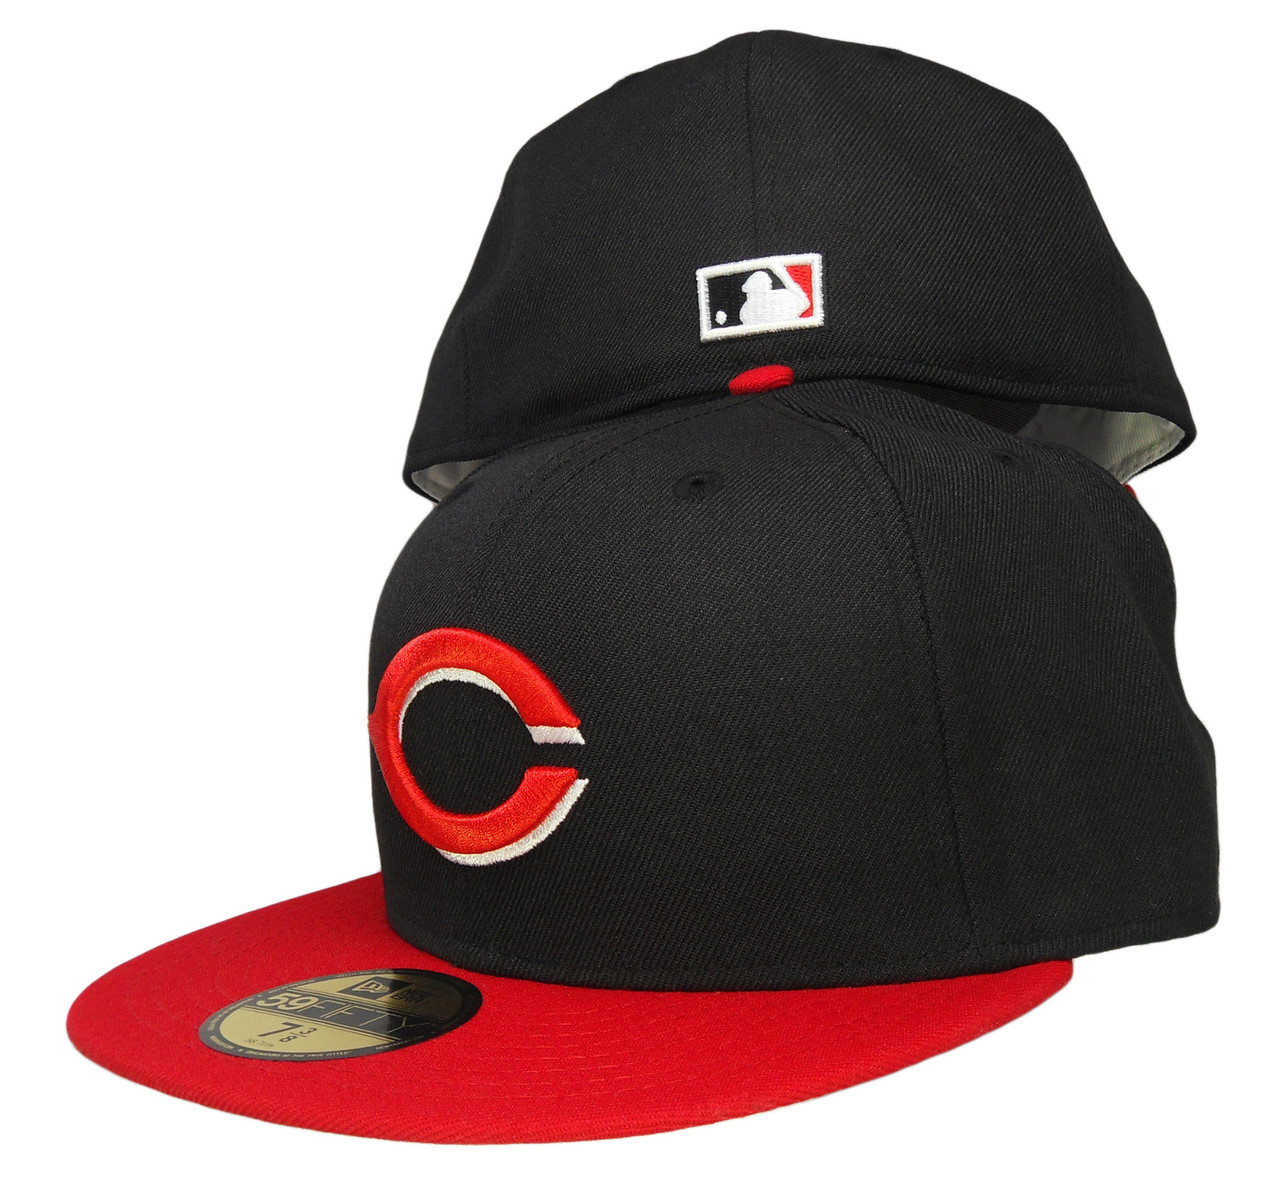 finest selection 2eaac b8373 ... best cincinnati reds new era gray bottom 59fifty fitted hat black red  c7fc2 e7d47 ...